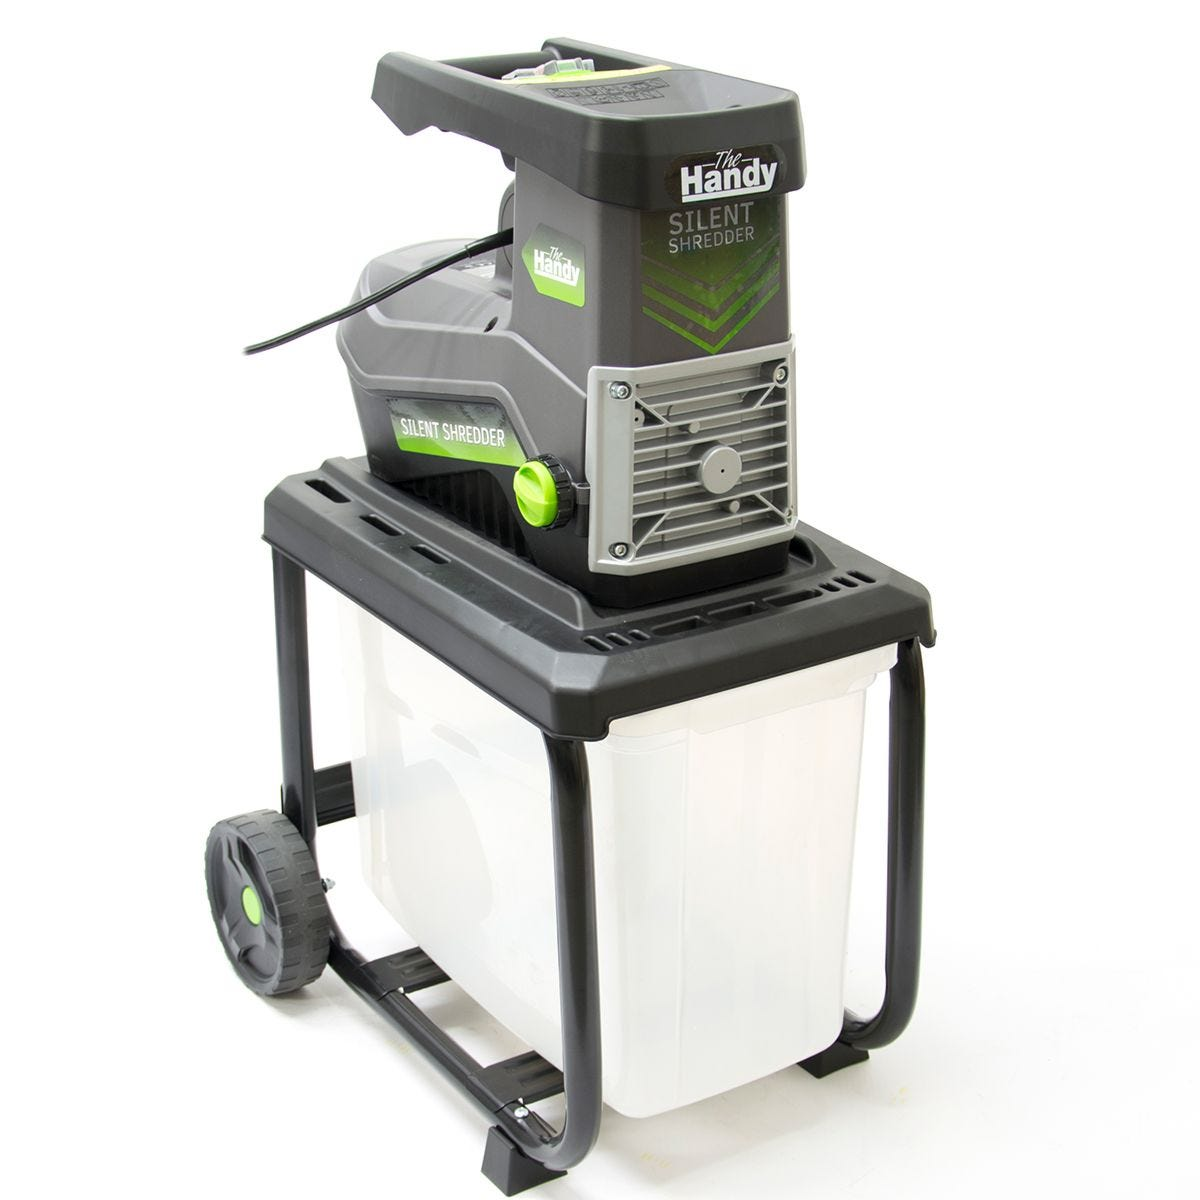 The Handy Electric Silent Shredder with Box